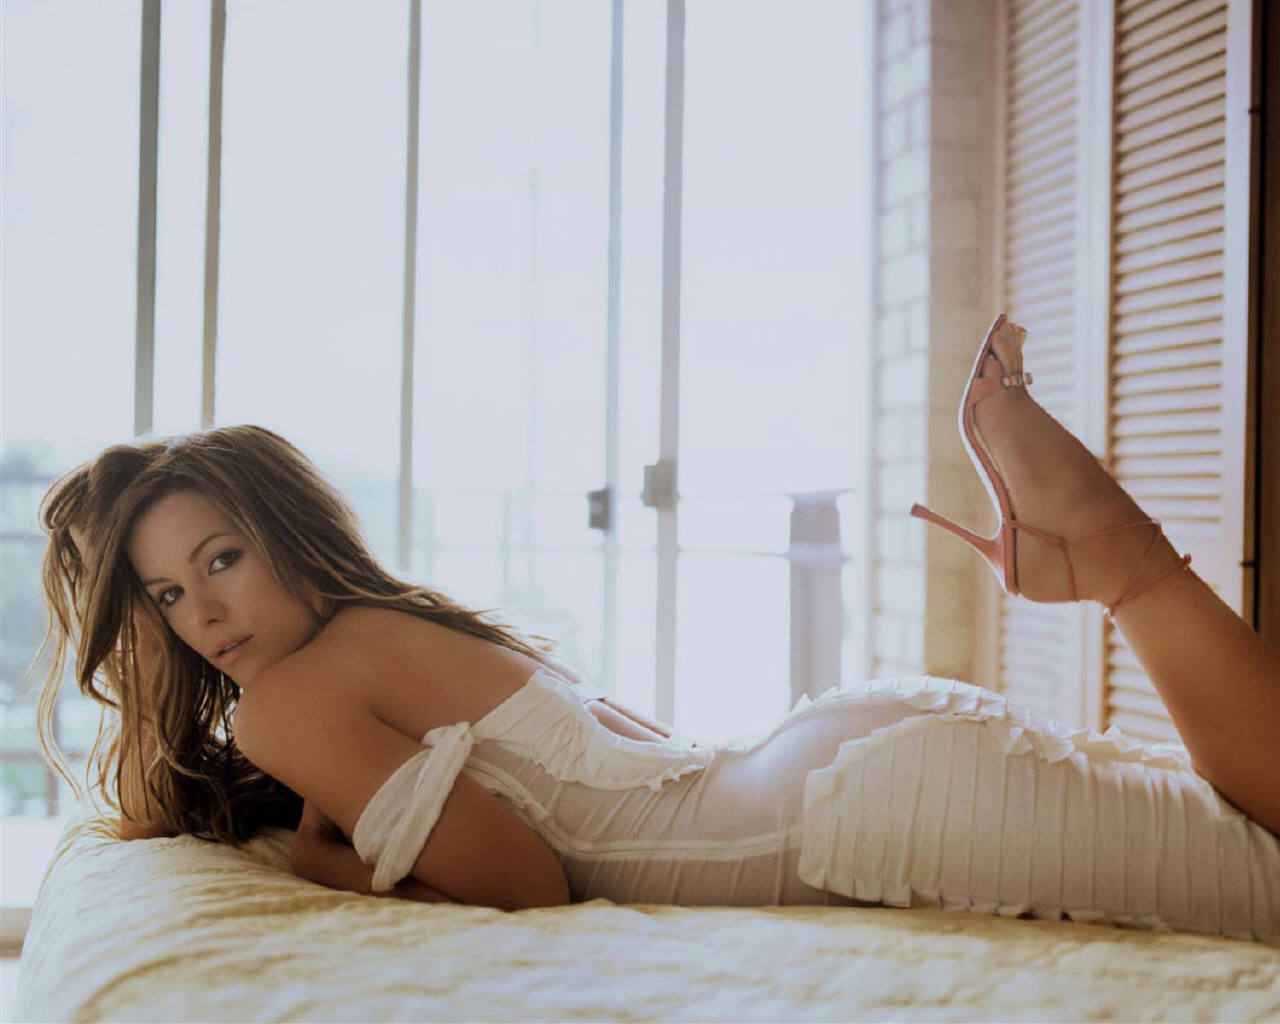 http://4.bp.blogspot.com/--RbLLgtARzM/Txzcg9vXlwI/AAAAAAAAD14/kjIvmptSSeU/s1600/Kate-beckinsale-beauty-hot-stills.jpg